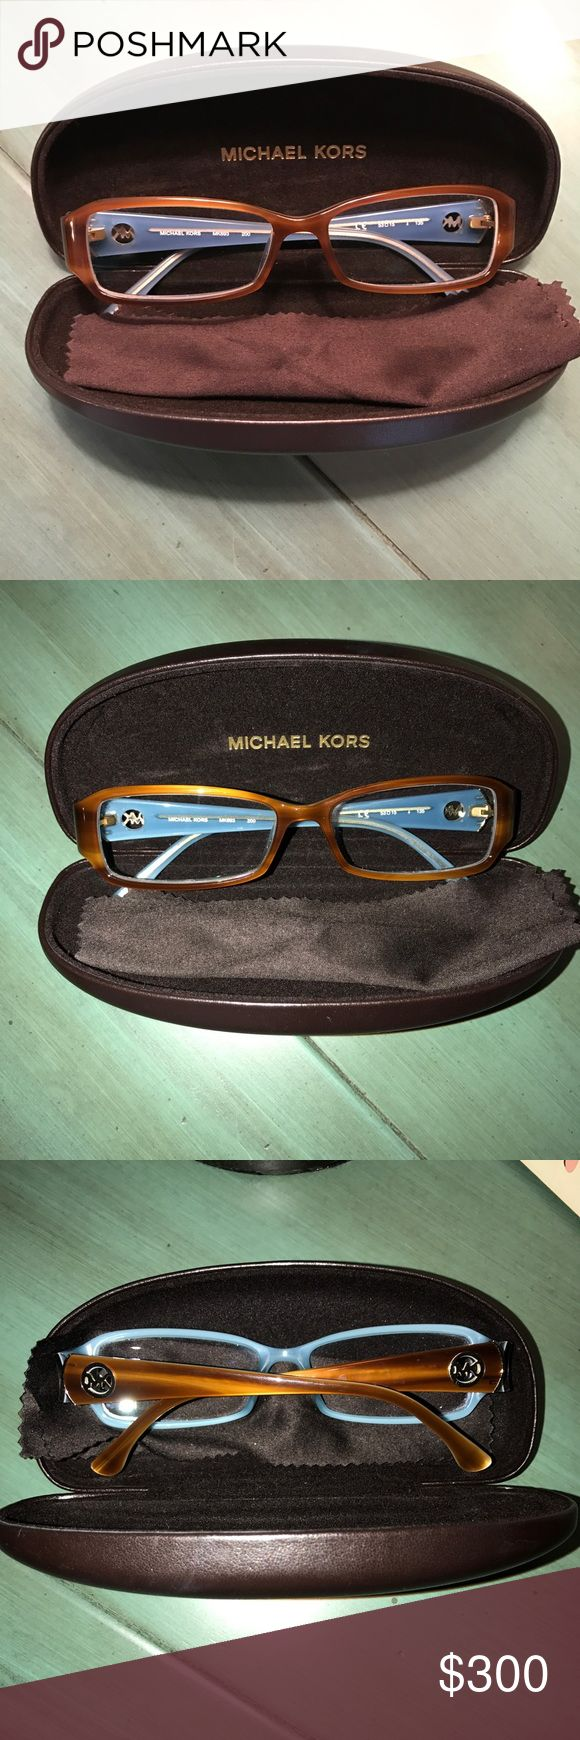 RARE Michael Kors prescription glasses Rare Michael Kors glasses not sold anymore, color is true to pictures, very light blue inside that can't be seen when wearing glasses and light wood colored wood frames. Frames were $350 and prescription was $95. They are -2.00 prescription glasses with anti-glare upgrade. The lenses are crystal clear not scratched or anything as well as the frames. I bought these as my back up pair and ending up loving my first pair more so I've only worn these twice…